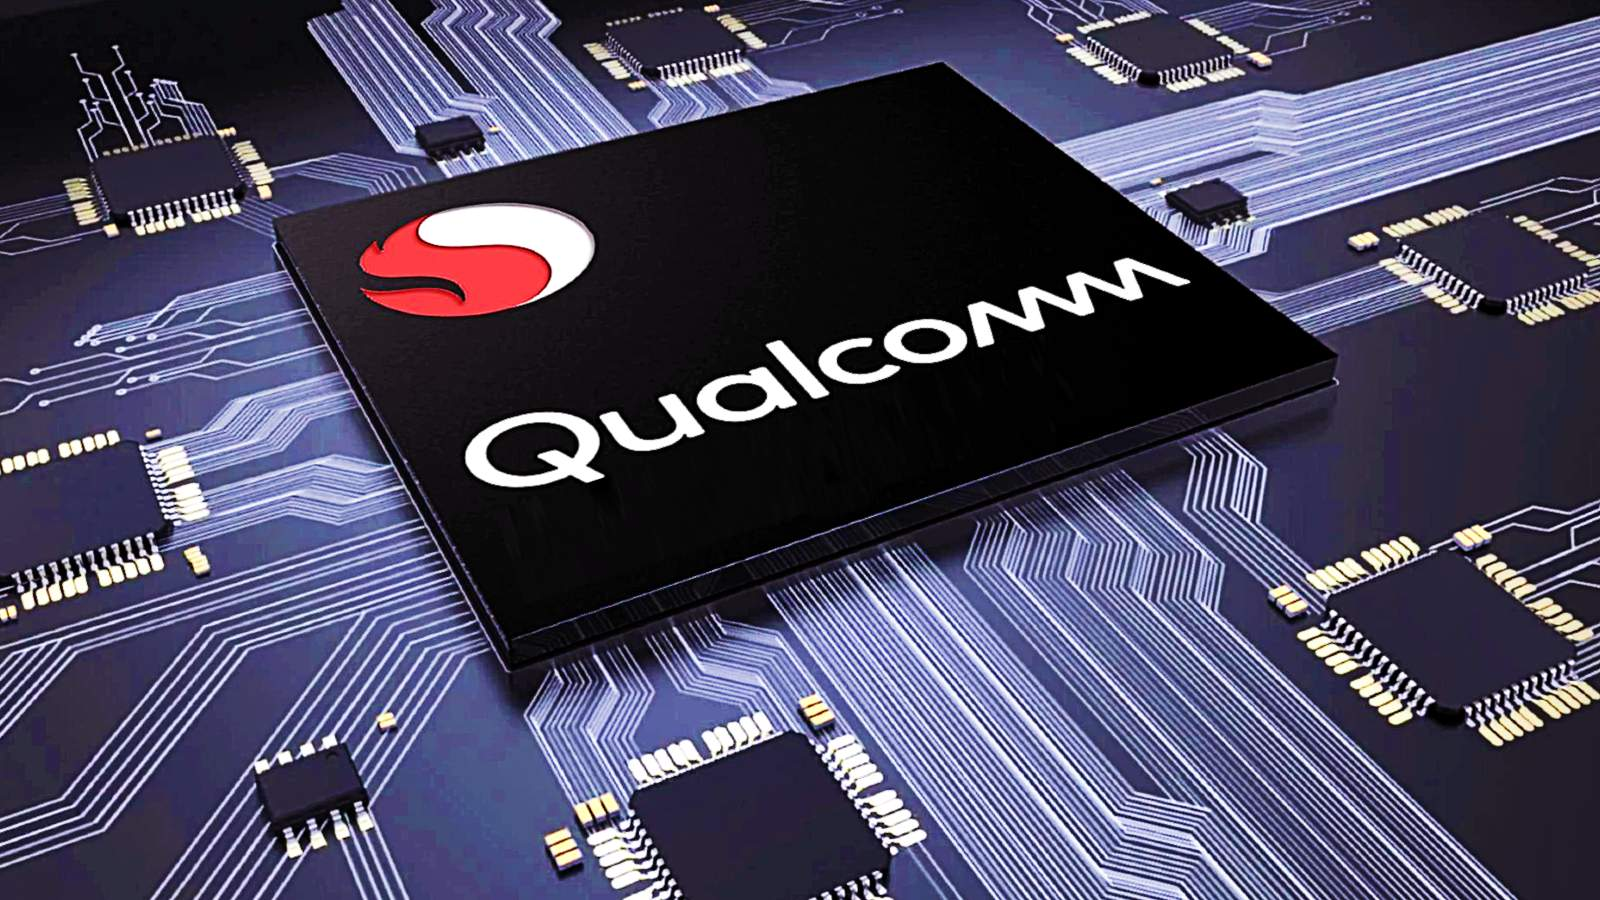 Qualcomm is Working on SM6375, a Budget Chip Intended for the Gamers